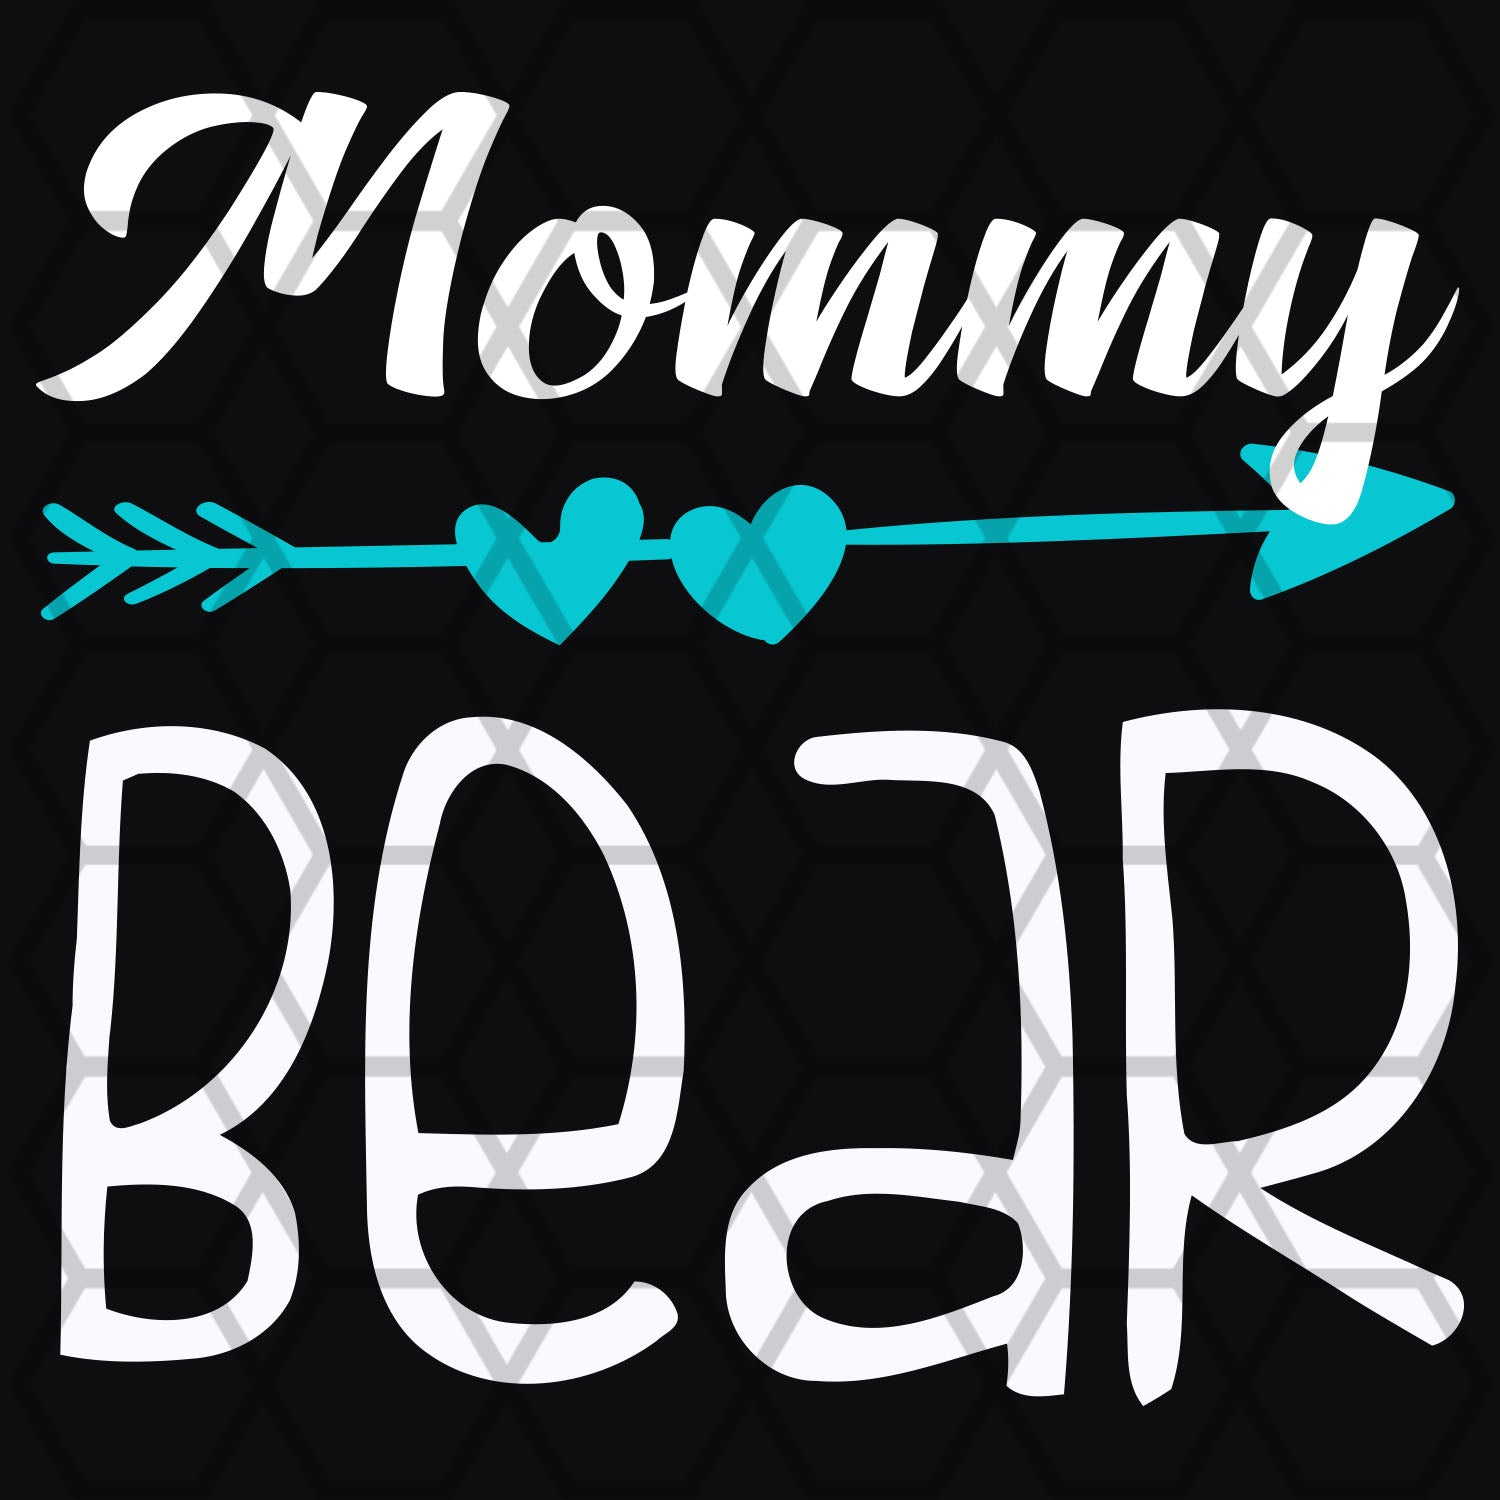 Mommy bear, mommy svg, mommy shirt, mommy gift svg,family svg, family shirt,family gift,trending svg, Files For Silhouette, Files For Cricut, SVG, DXF, EPS, PNG, Instant Download